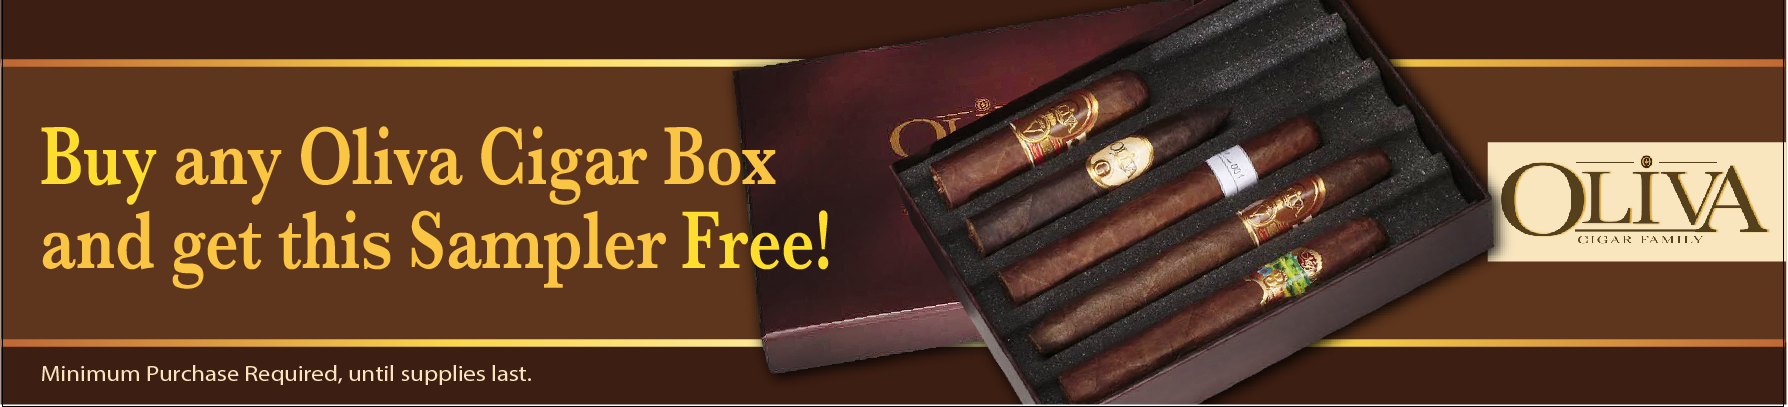 buy oliva, padilla or nub box cigars free sampler